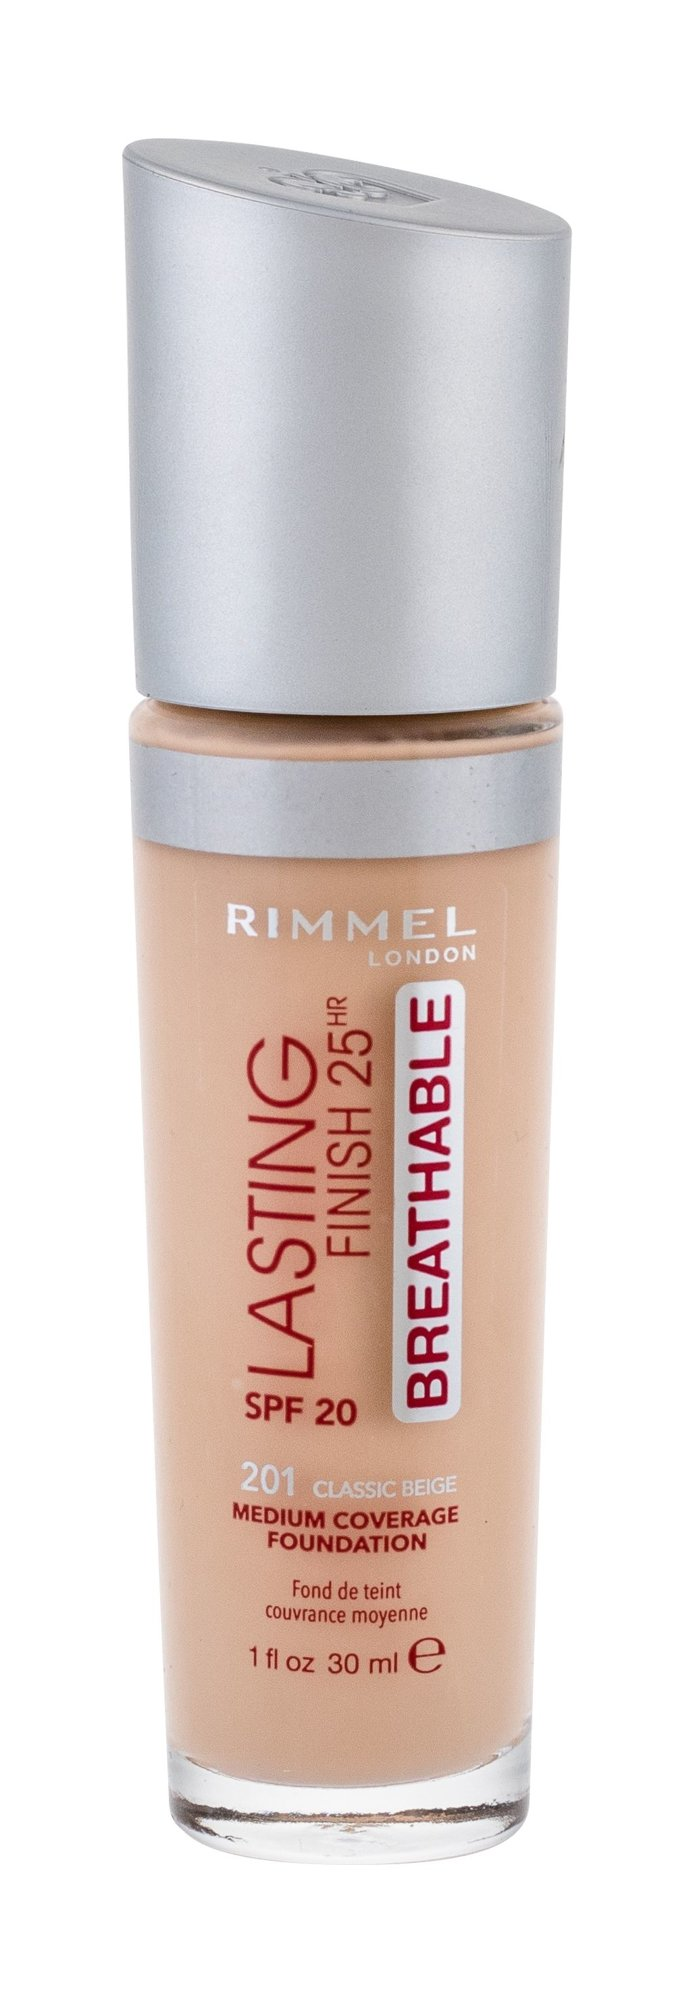 Rimmel London Lasting Finish Makeup 30ml 201 Classic Beige